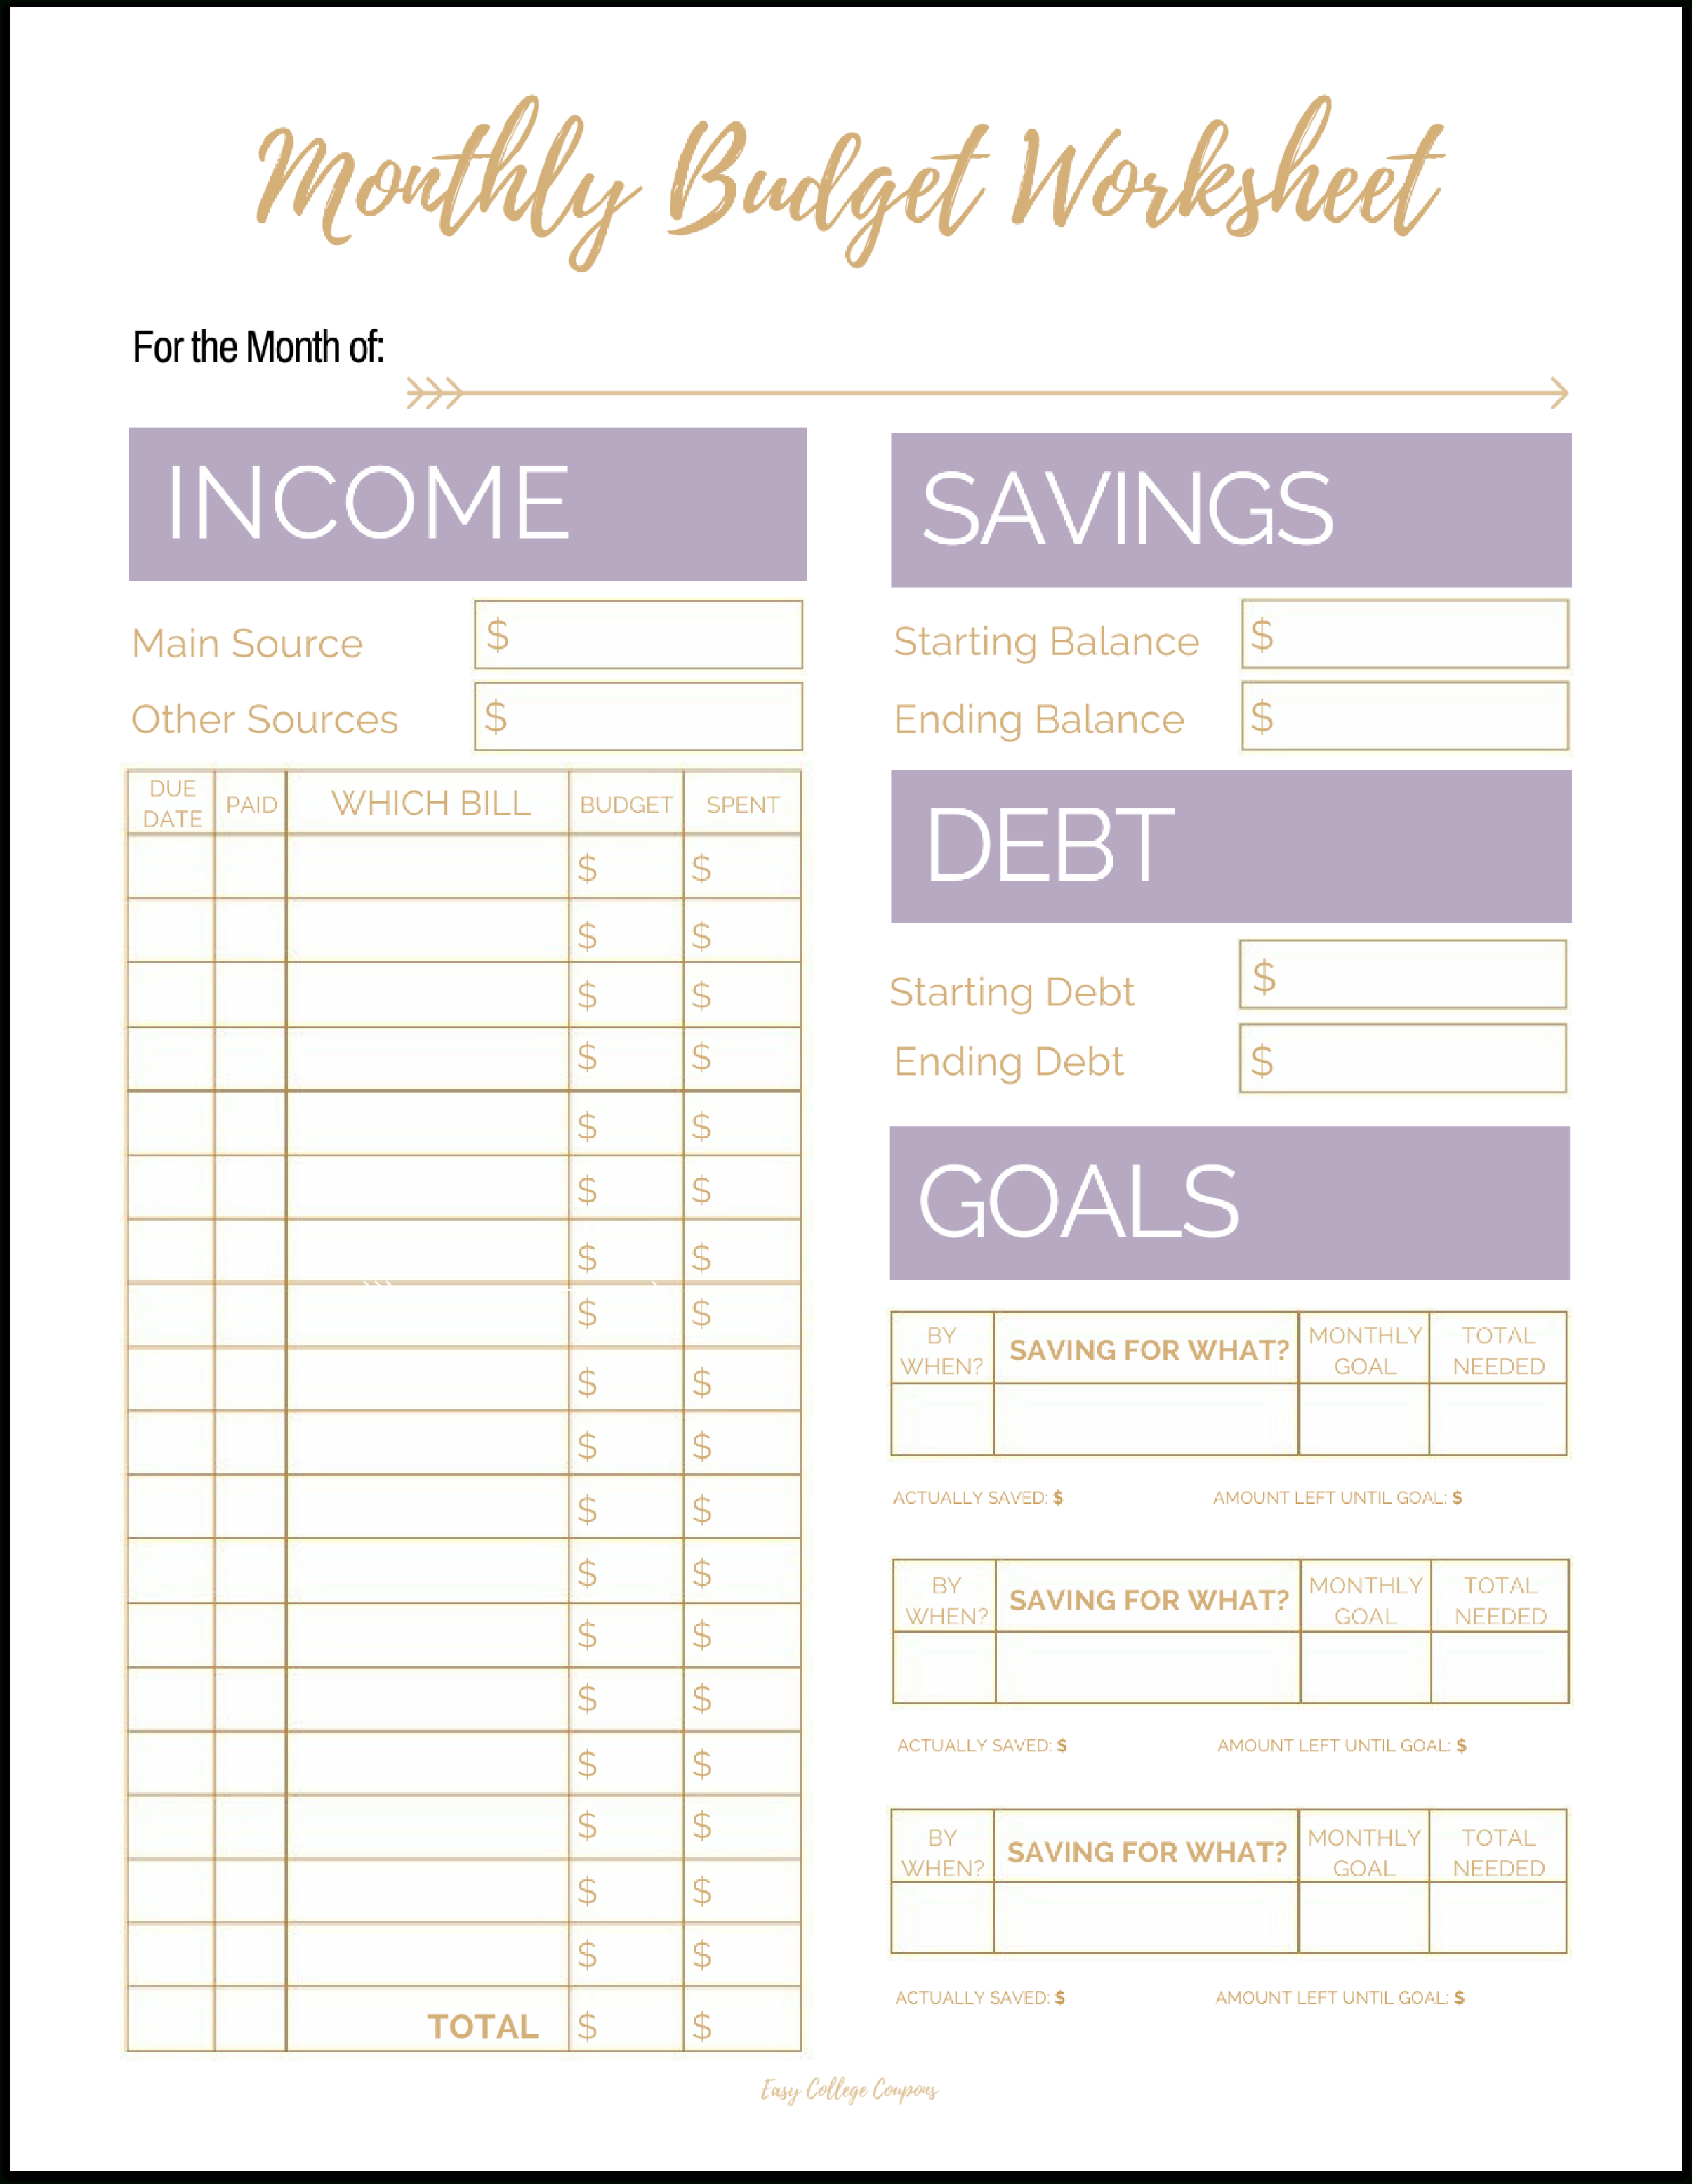 Blank Monthly Budget Worksheet The Future Pinterest